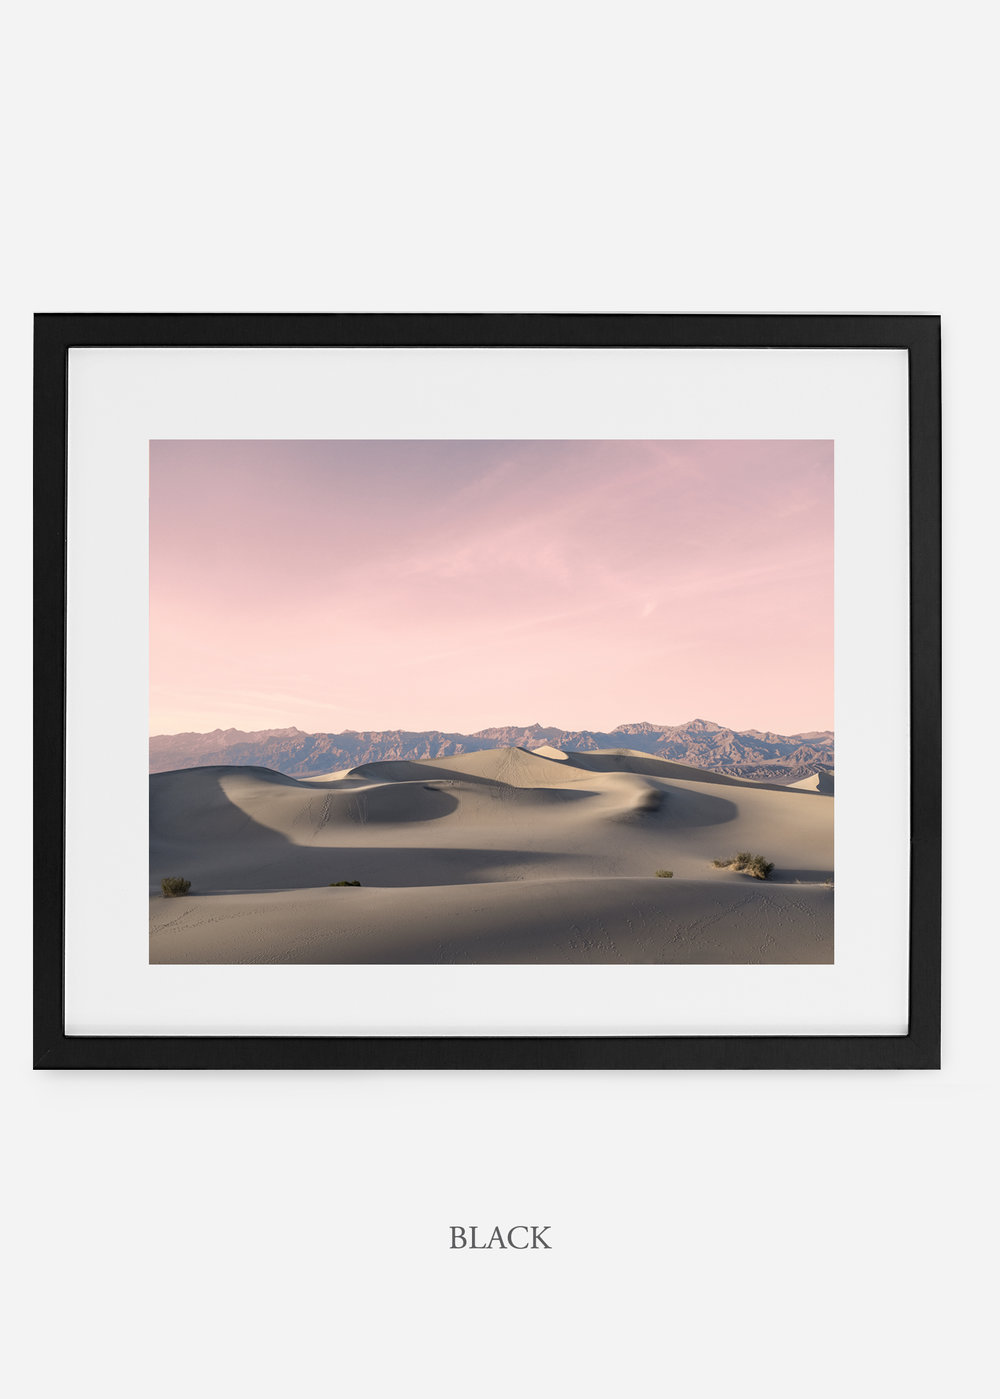 wildercalifornia_blackframe__deathvalley_17_cactus_art_interiordesign_blackandwhite.jpg